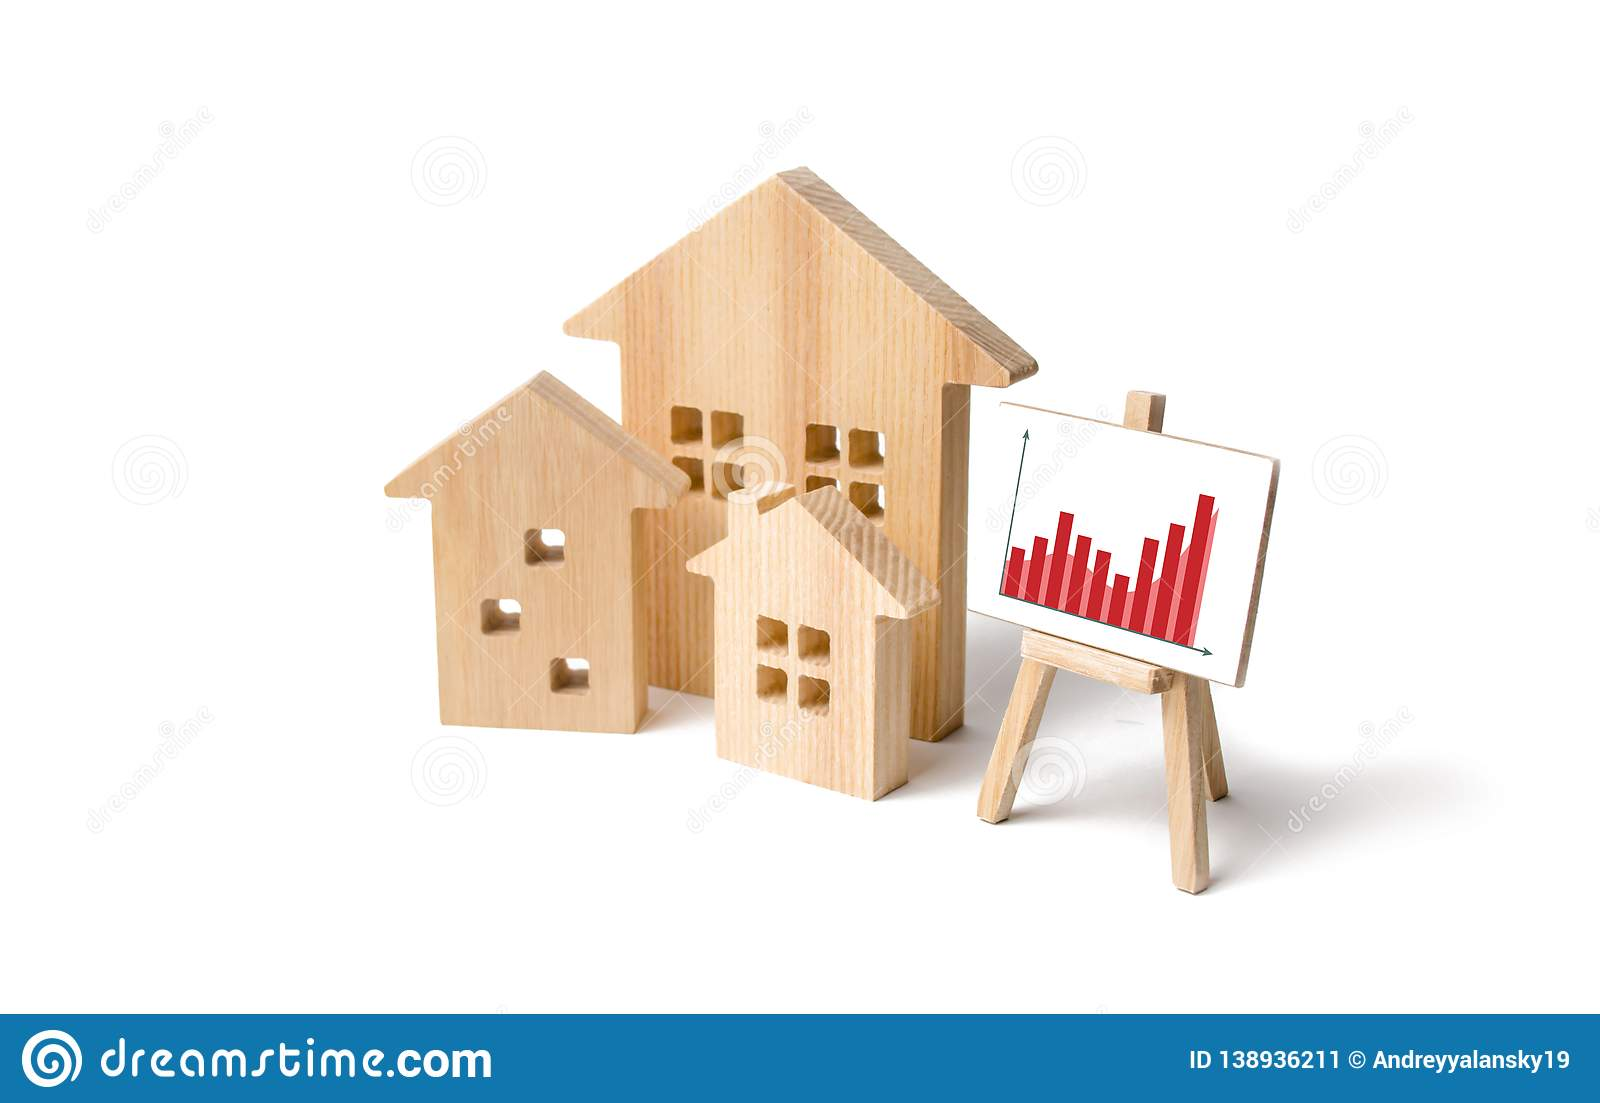 Wooden houses with a stand of graphics and information. Growing demand for housing and real estate. growth of the city